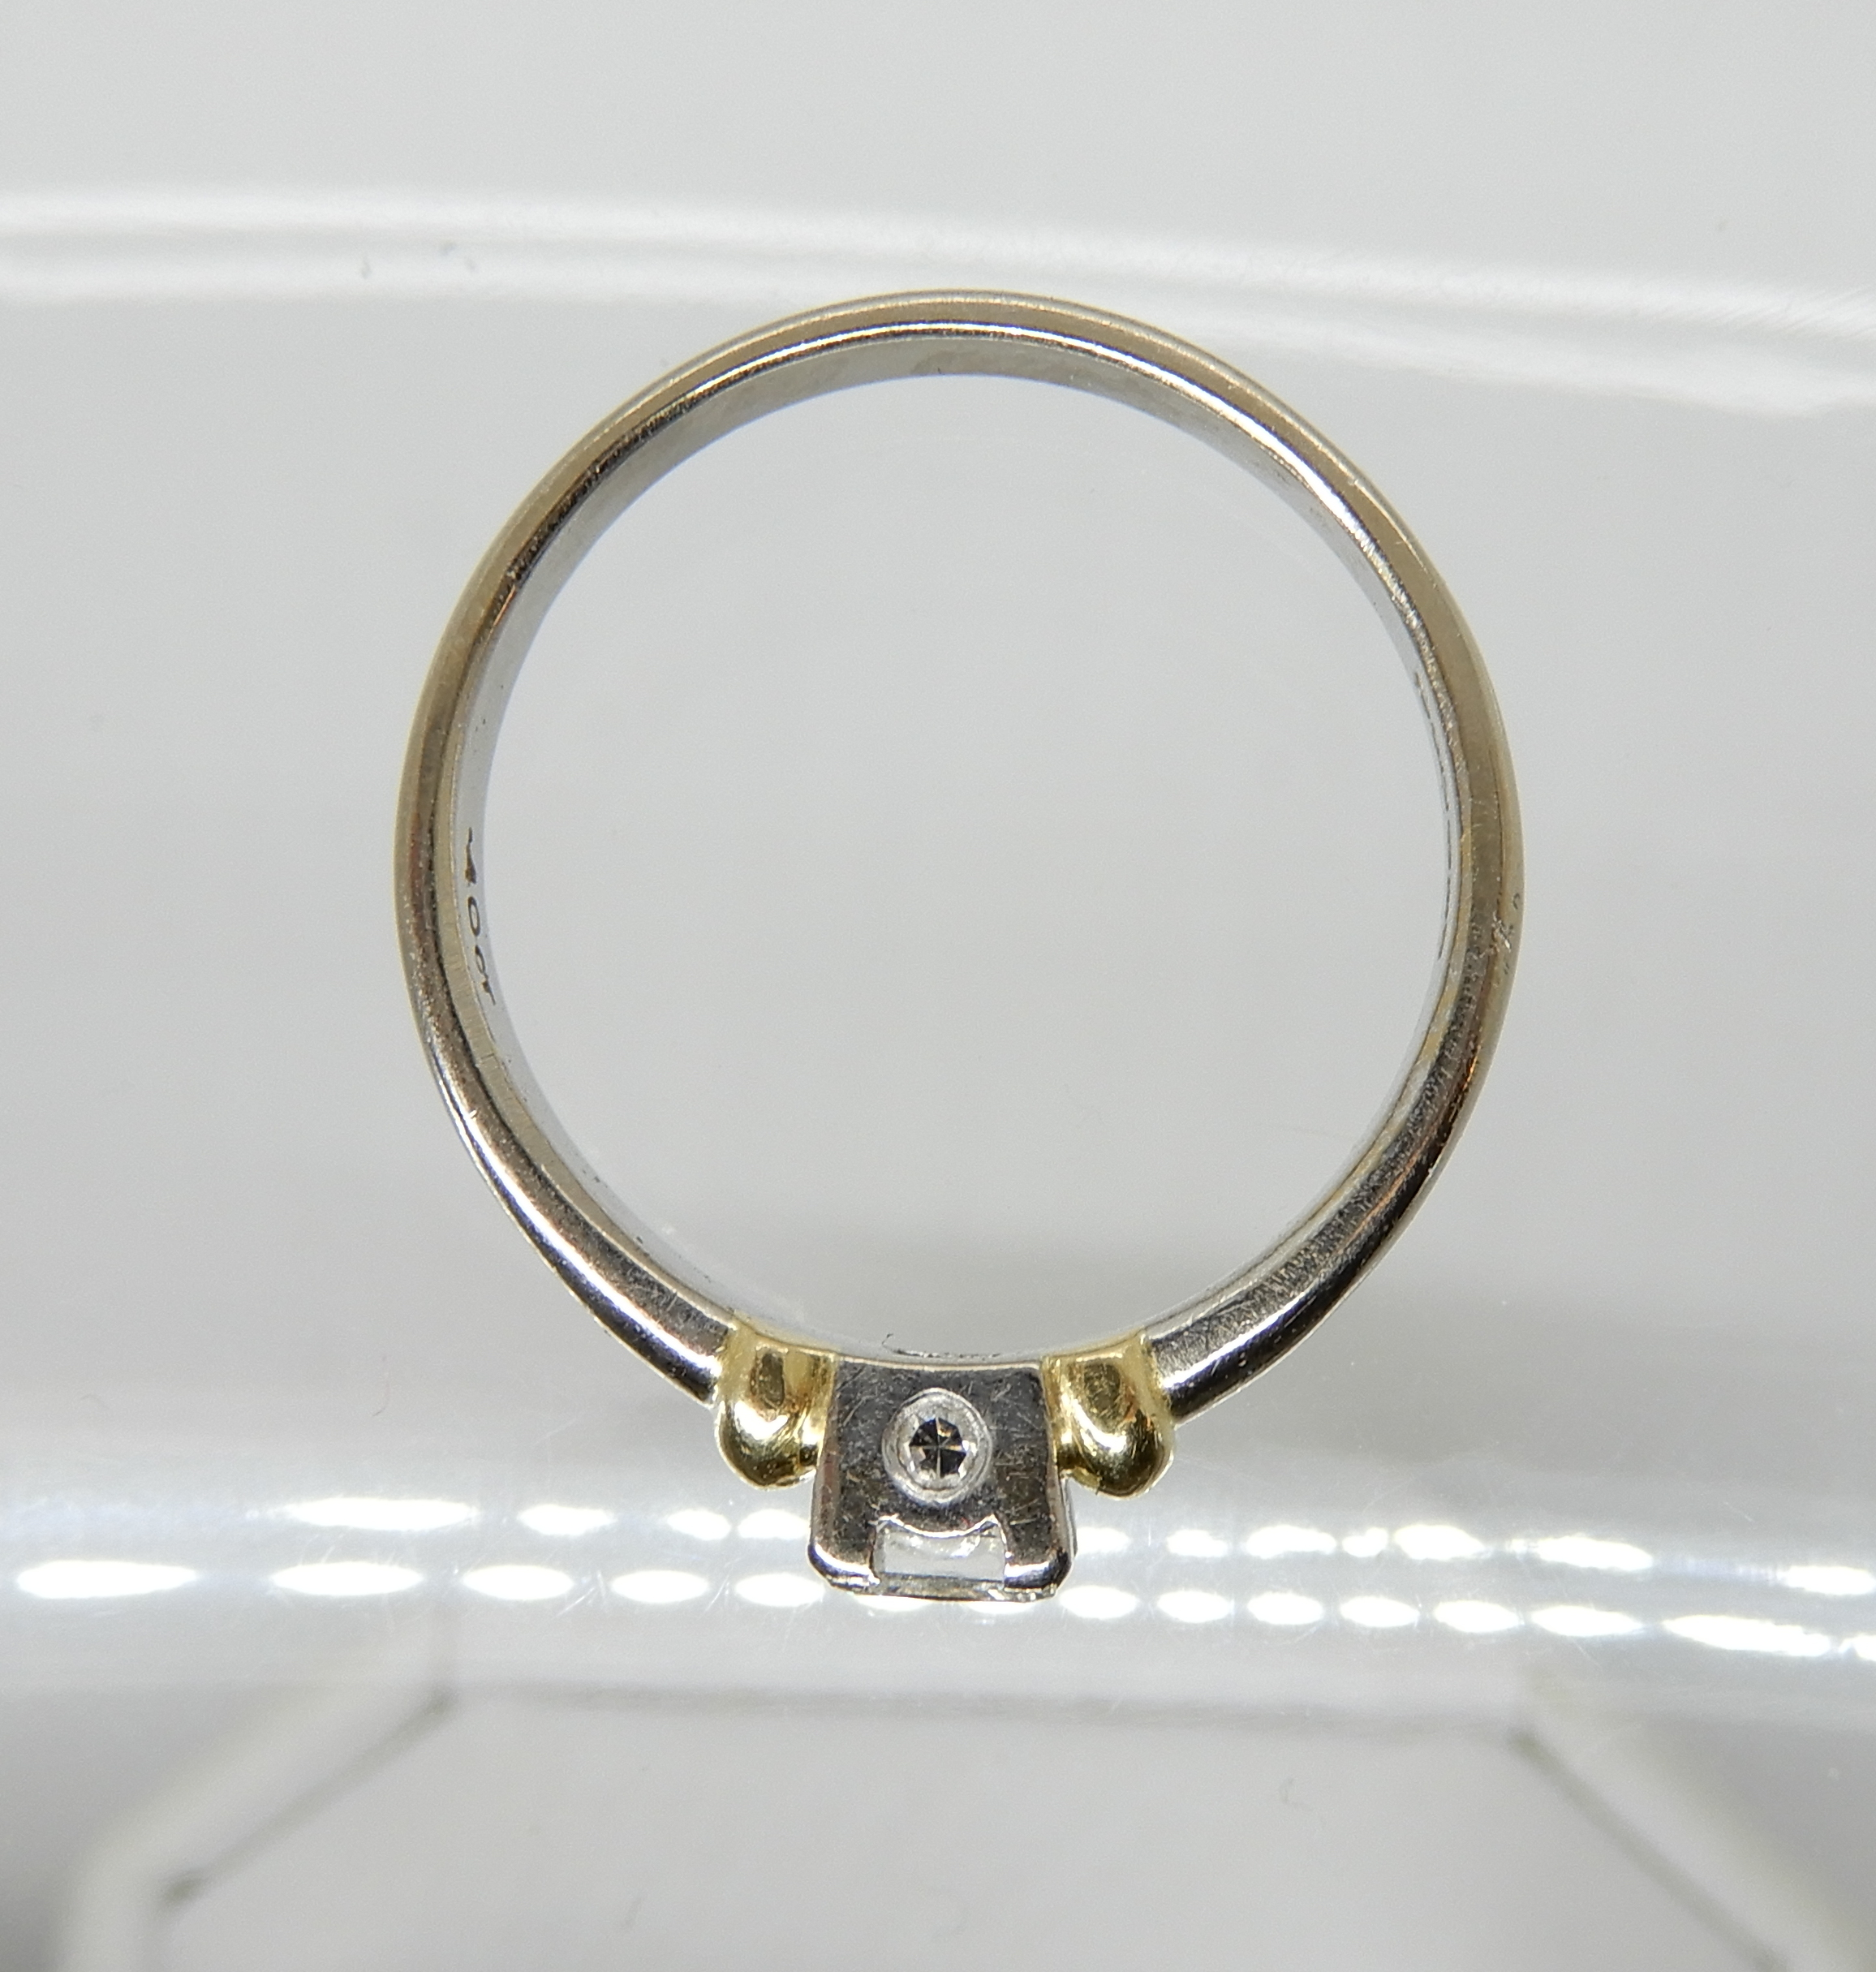 Lot 16 - An 18ct white and yellow gold princess cut diamond ring set with estimated approx 0.40cts, with